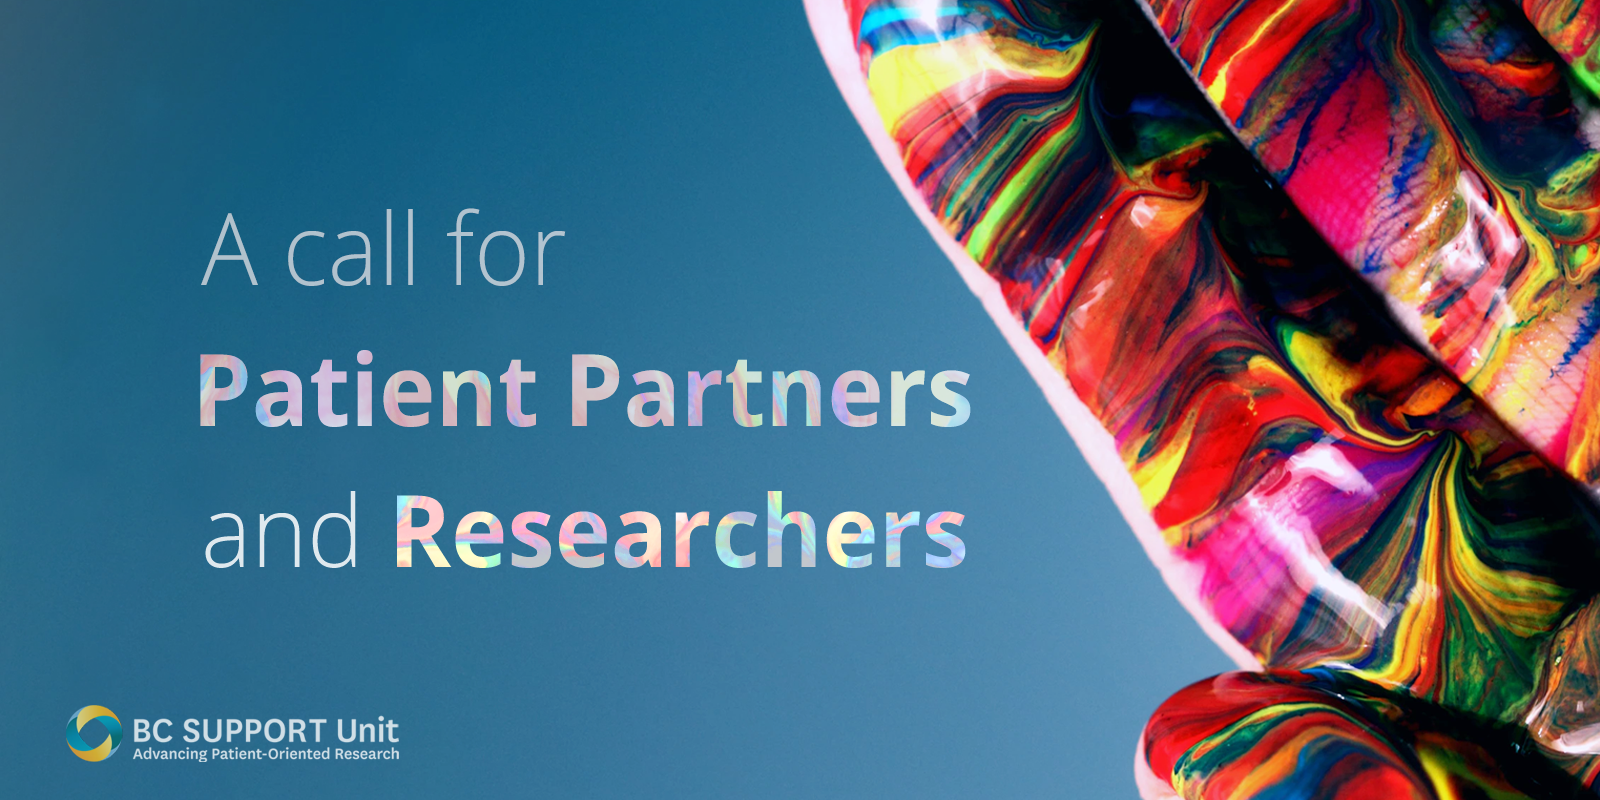 Diversity in patient engagement: A call for patient partner and academic researcher leads